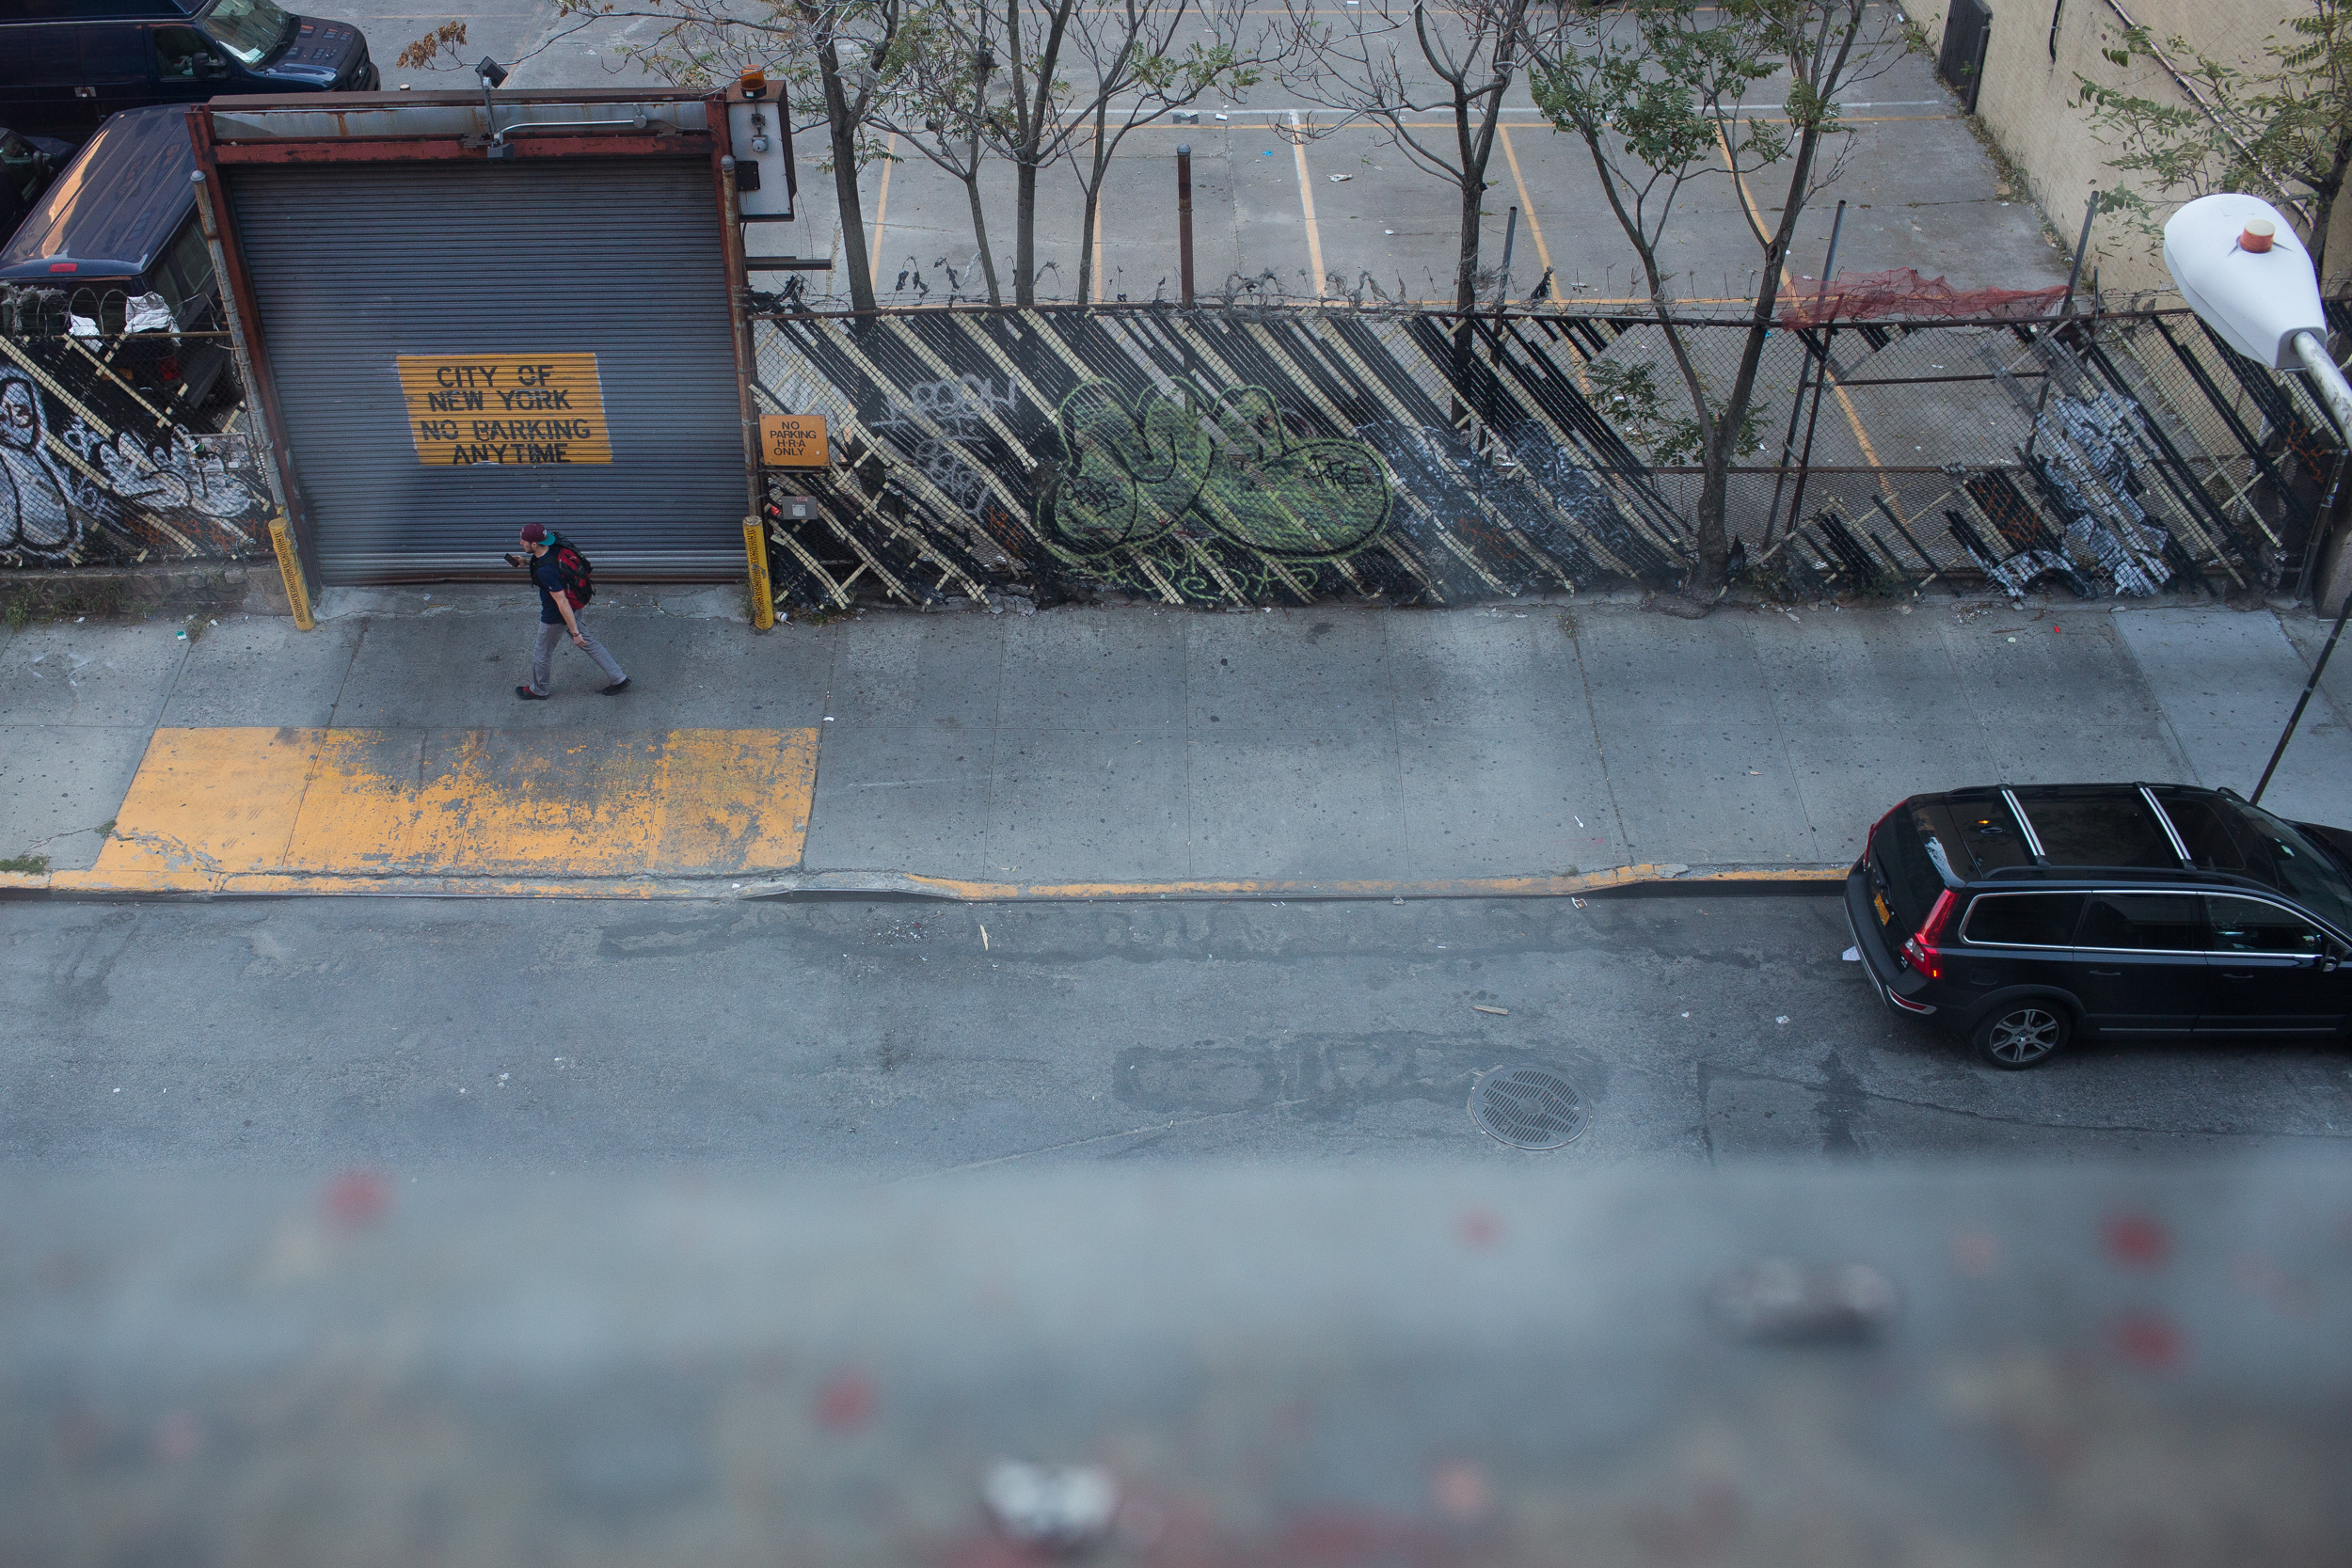 From the window sill outside of Magnum Foundation in Lower West Side Manhattan, N.Y. on Oct. 20, 2015.